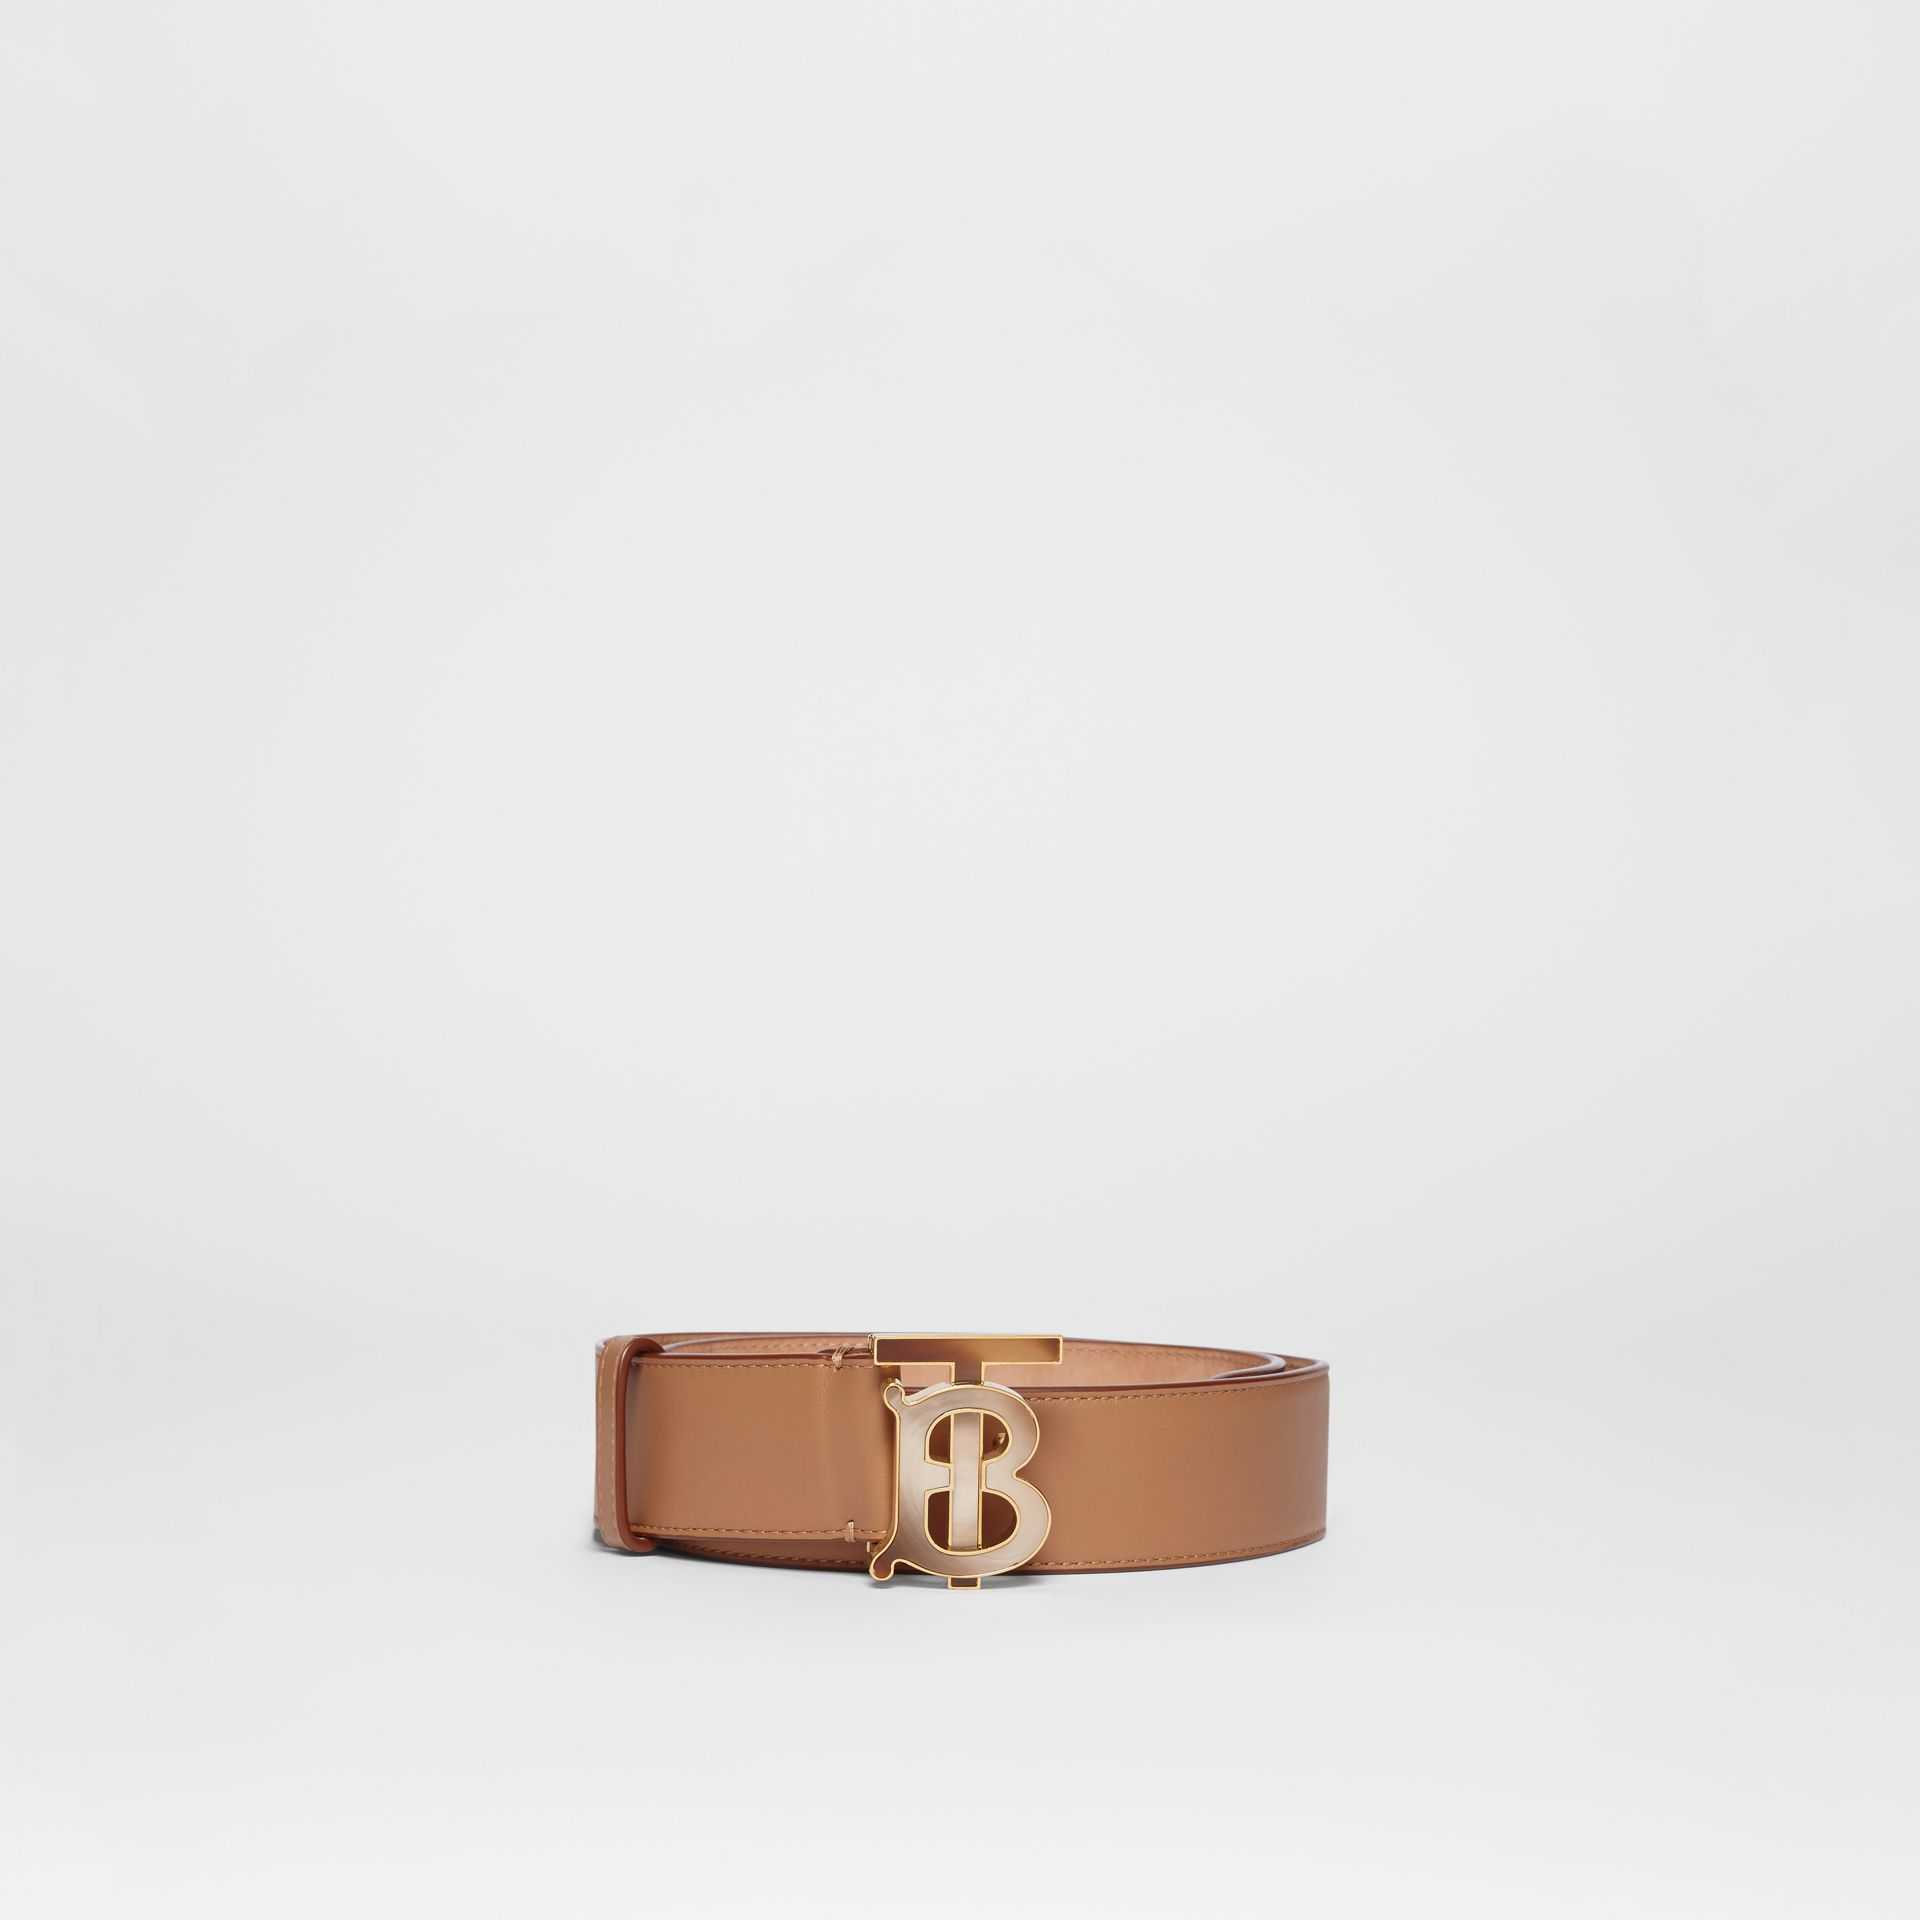 Monogram Motif Leather Belt in Light Camel - Women | Burberry - gallery image 2